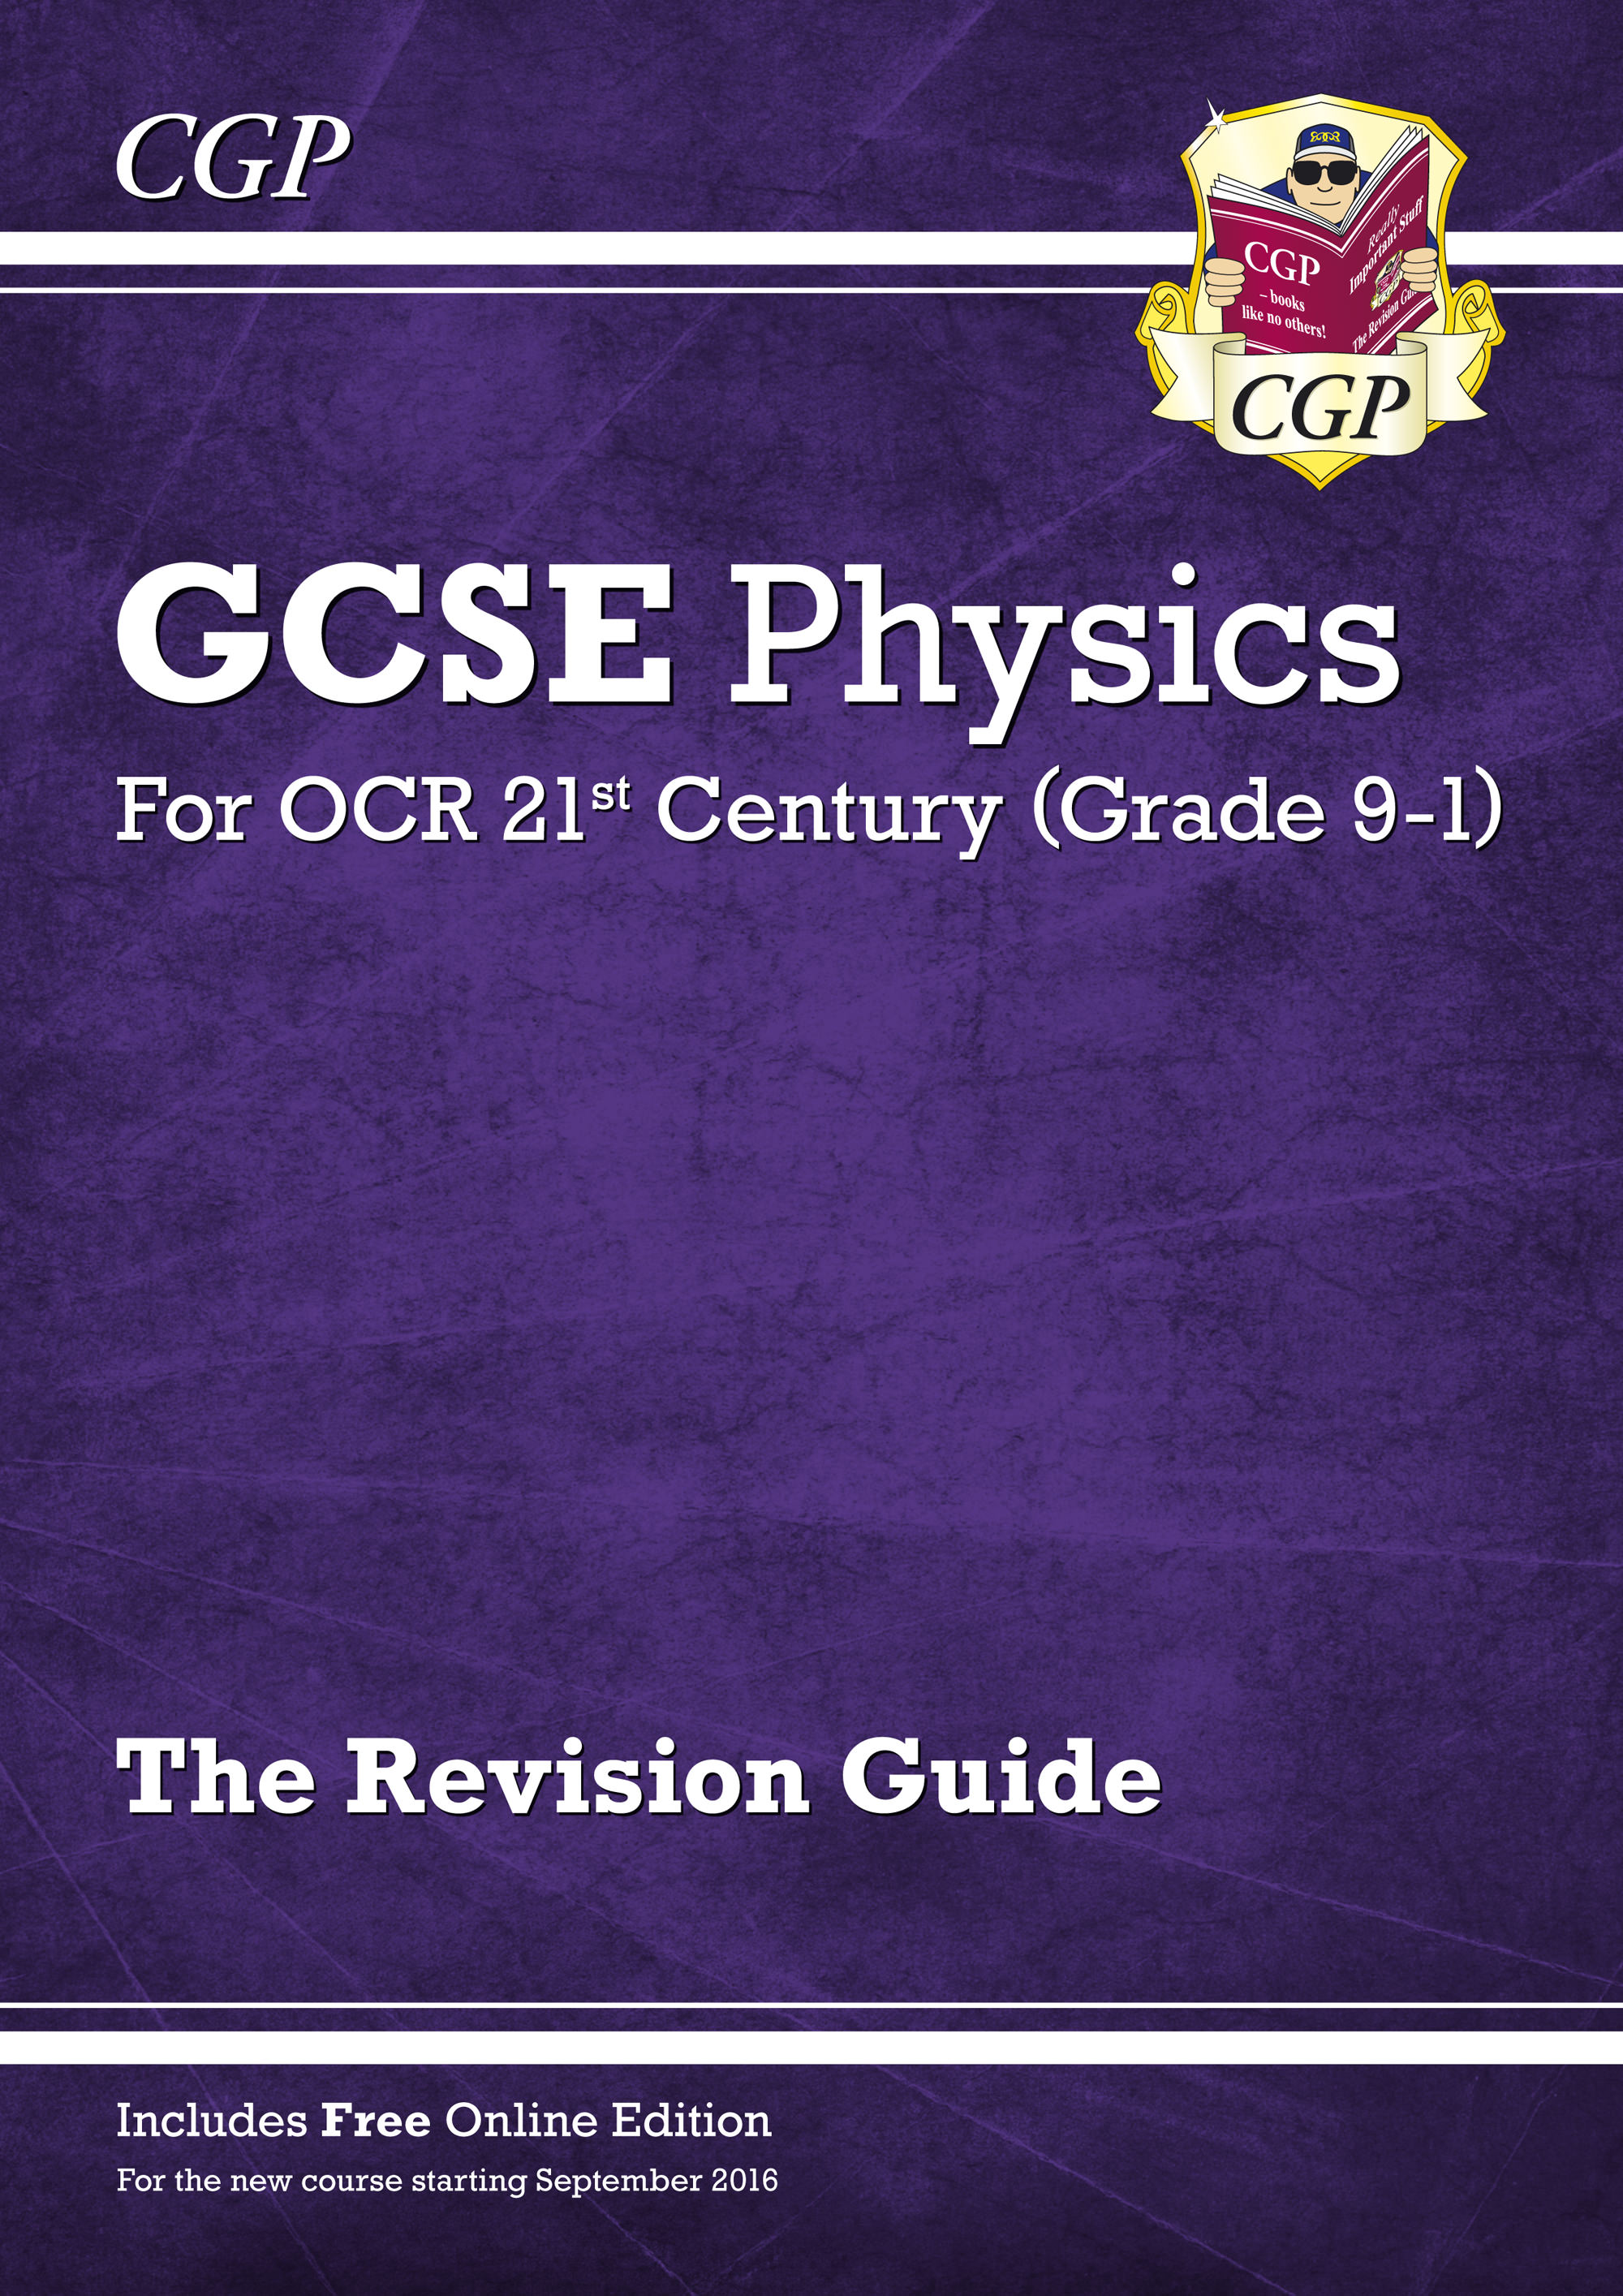 P2R45 - Grade 9-1 GCSE Physics: OCR 21st Century Revision Guide with Online Edition